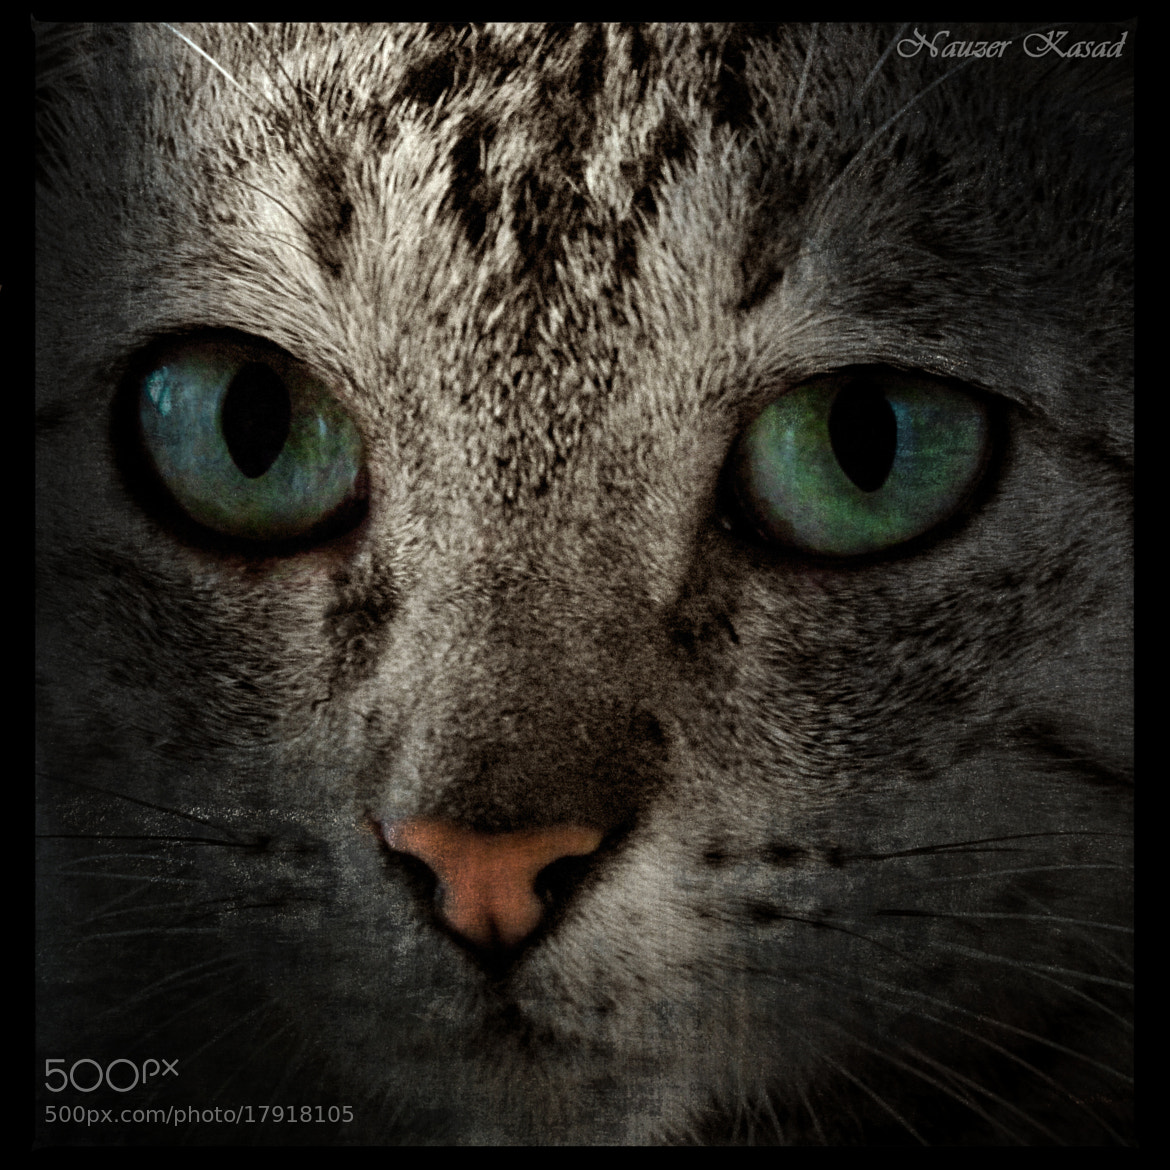 Photograph Feline eyes by Nauzer Kasad on 500px